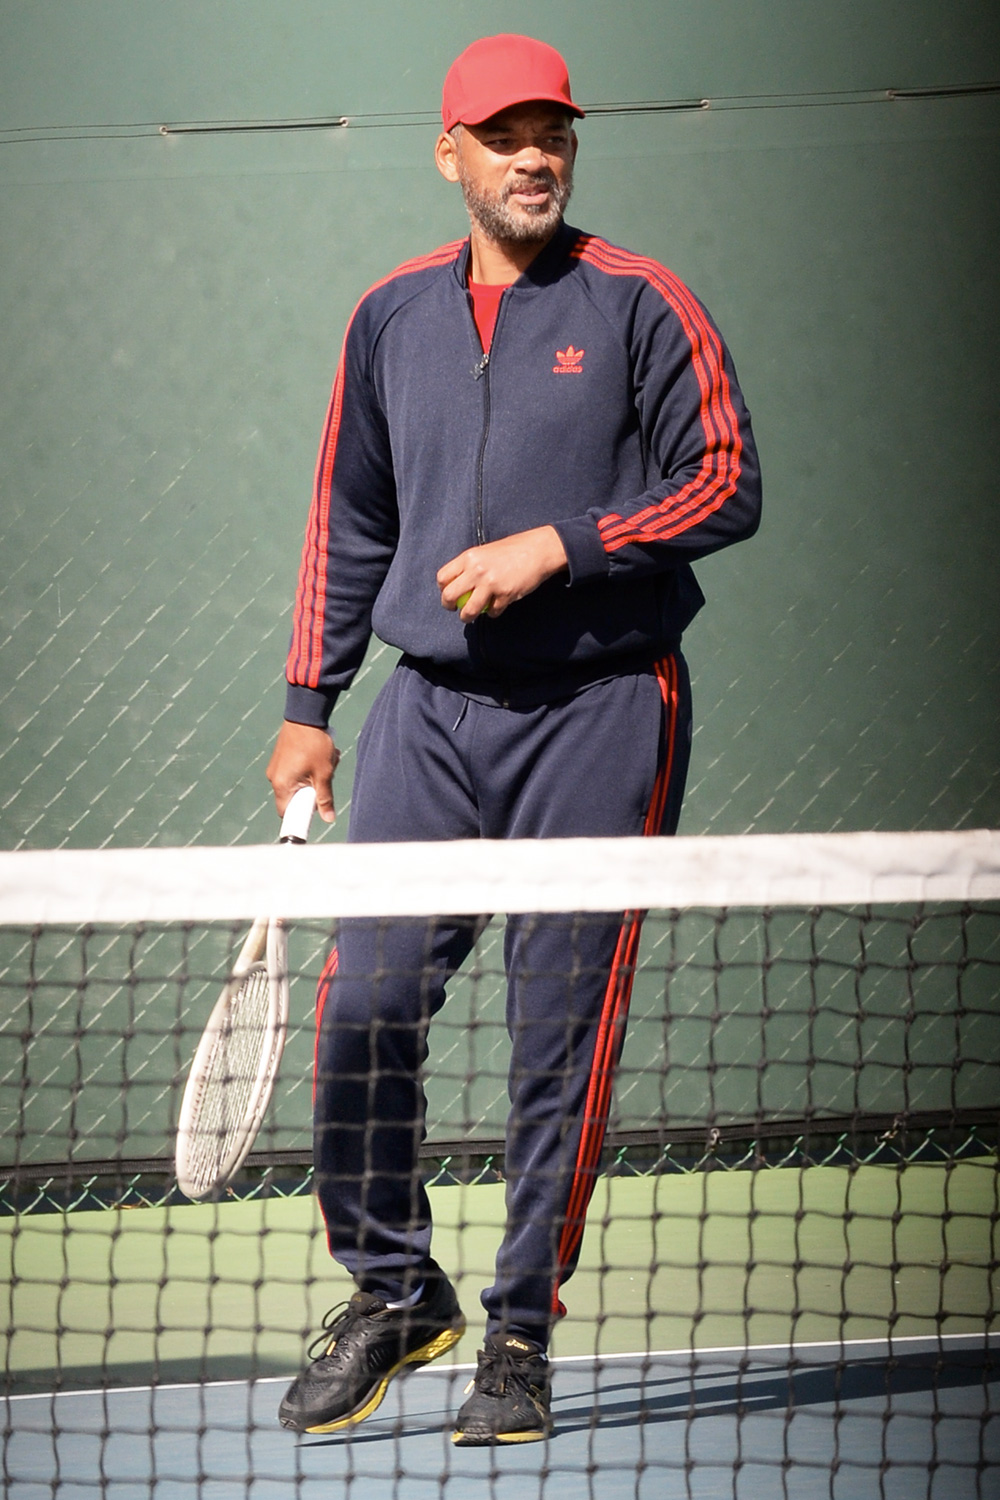 """Will Smith hits the tennis courts in Los Angeles. The Bad Boy actor is set to play the infamous father of the tennis sisters Venus and Serena Williams in """"King Richard"""" set to film this year."""